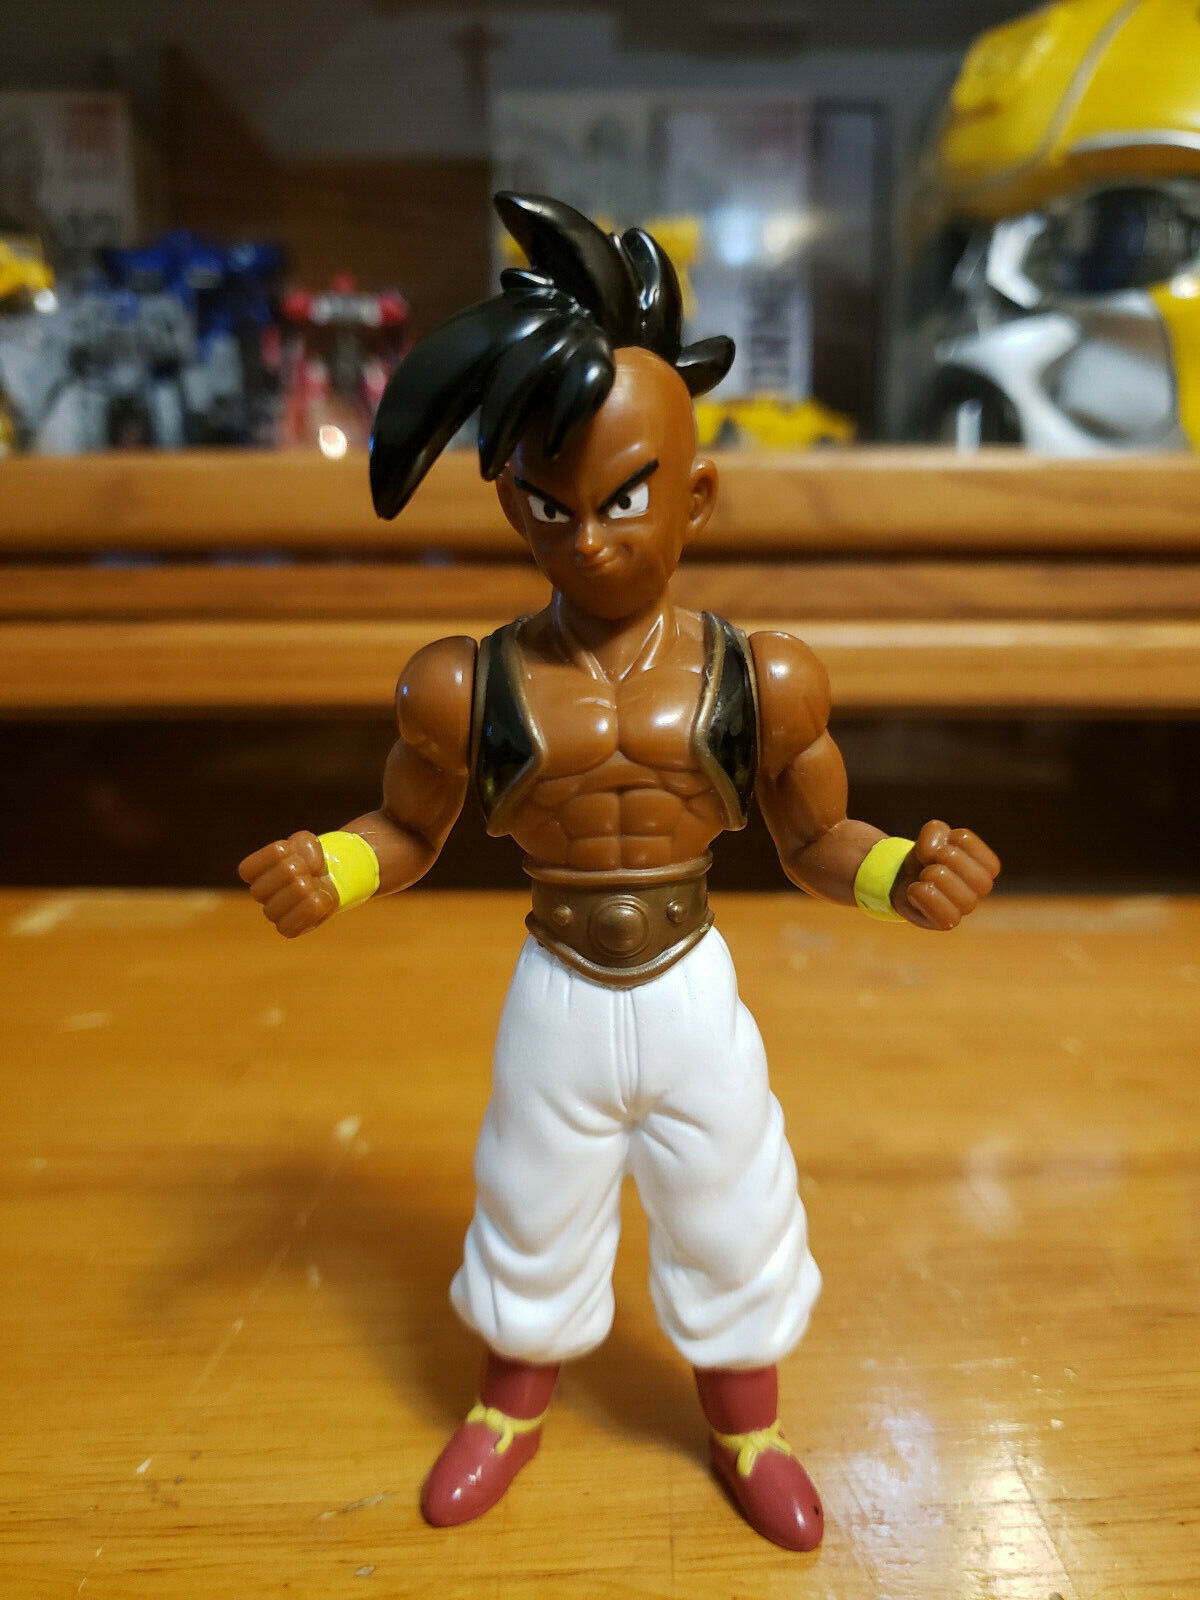 Character:GT Uub Vol 36:BANDAI Dragonball Z  and Dragon Ball GT super battle collection AB Toys & Irwin